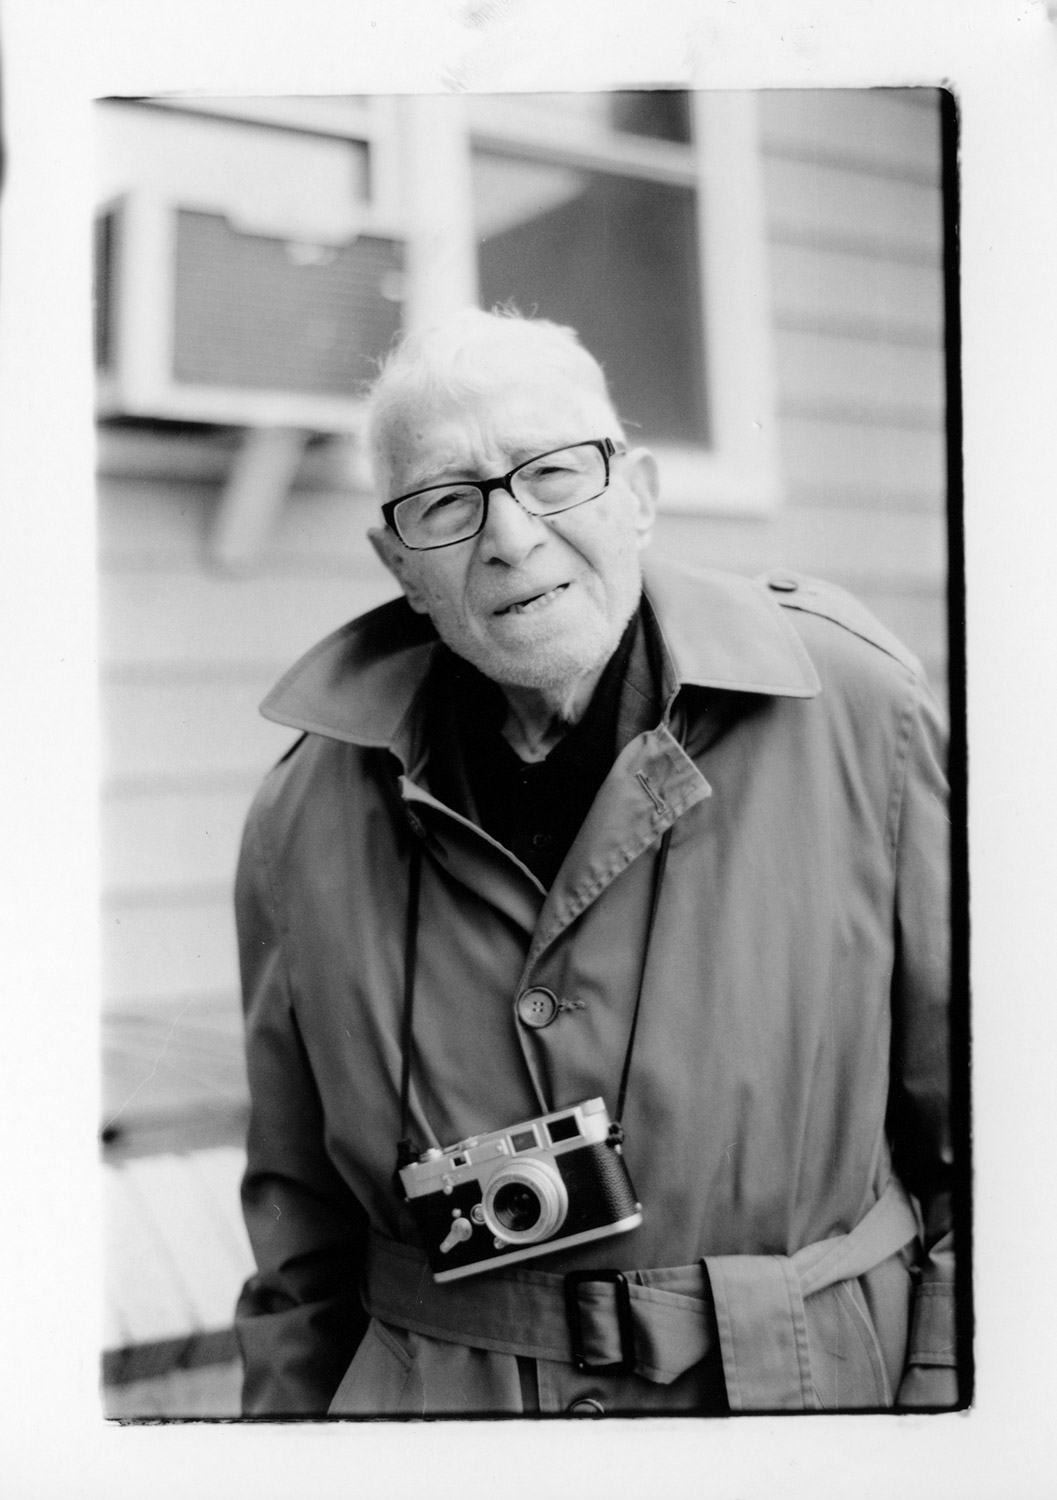 Coffee with Tony Vaccaro and his Leica M3 - Canon EOS-1v and Fujifilm NEOPAN 100 ACROS